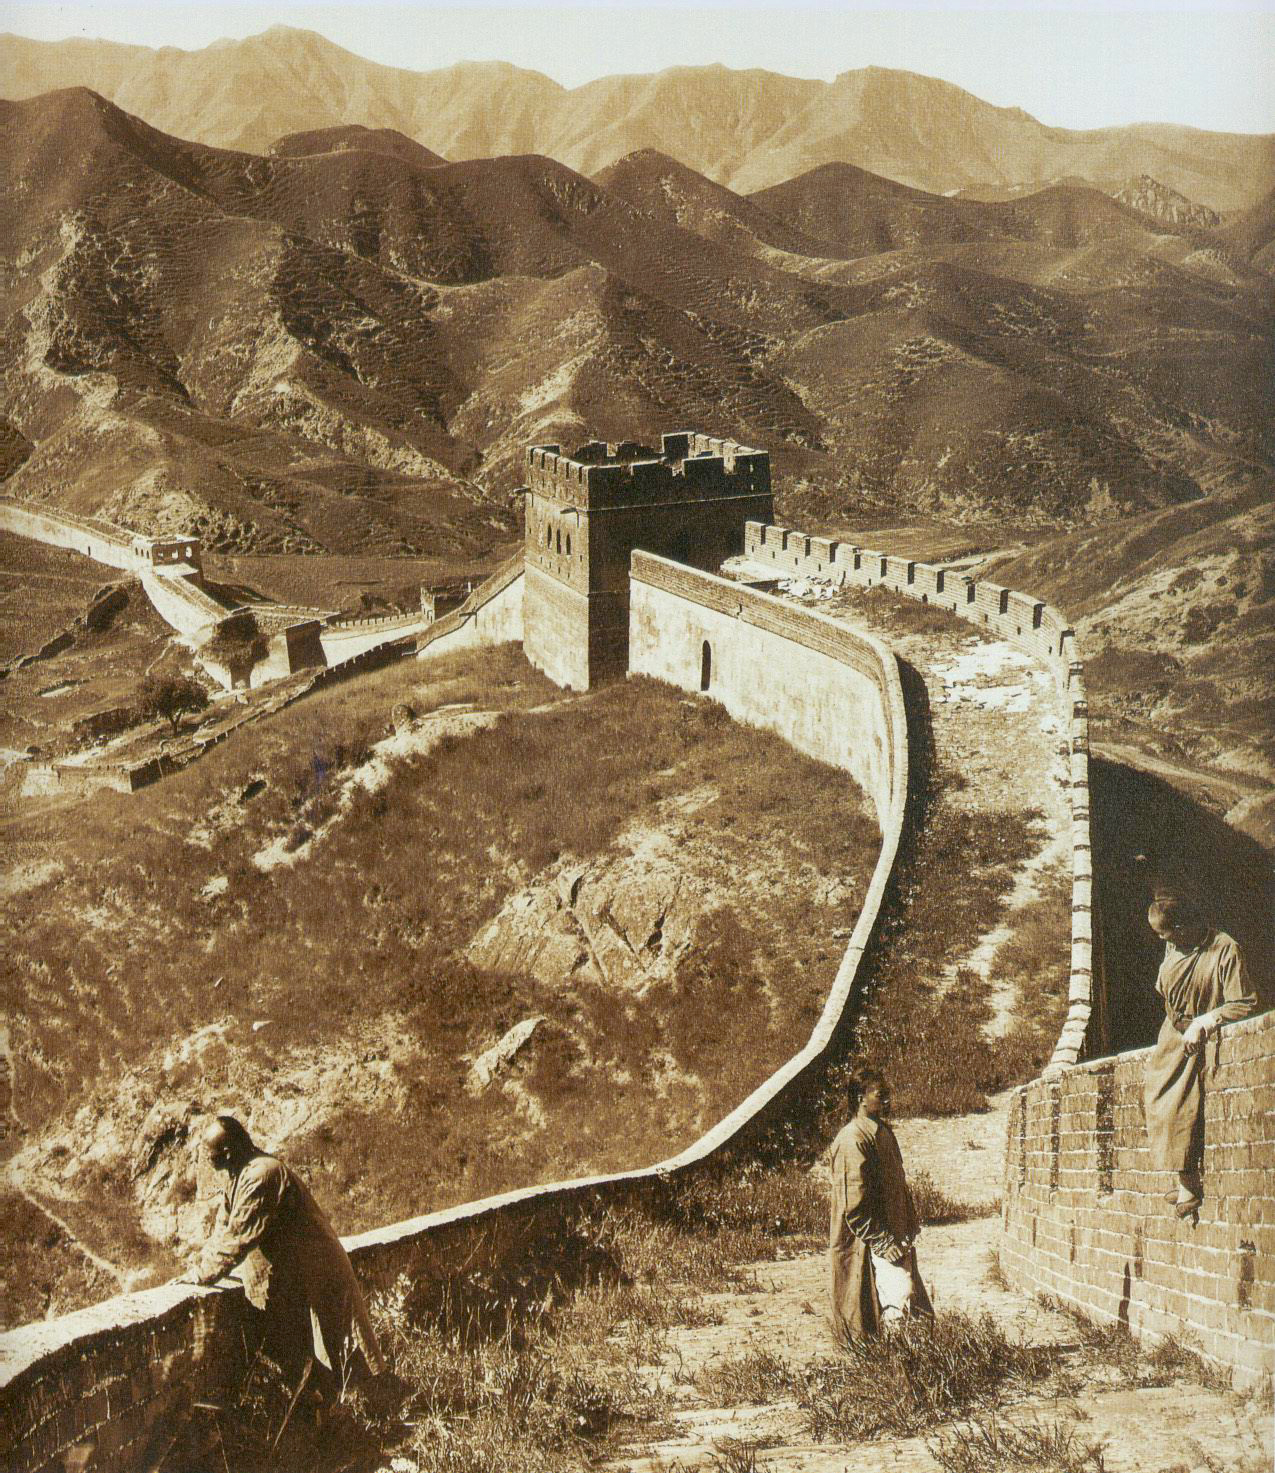 The Great Wall of China, 1907.